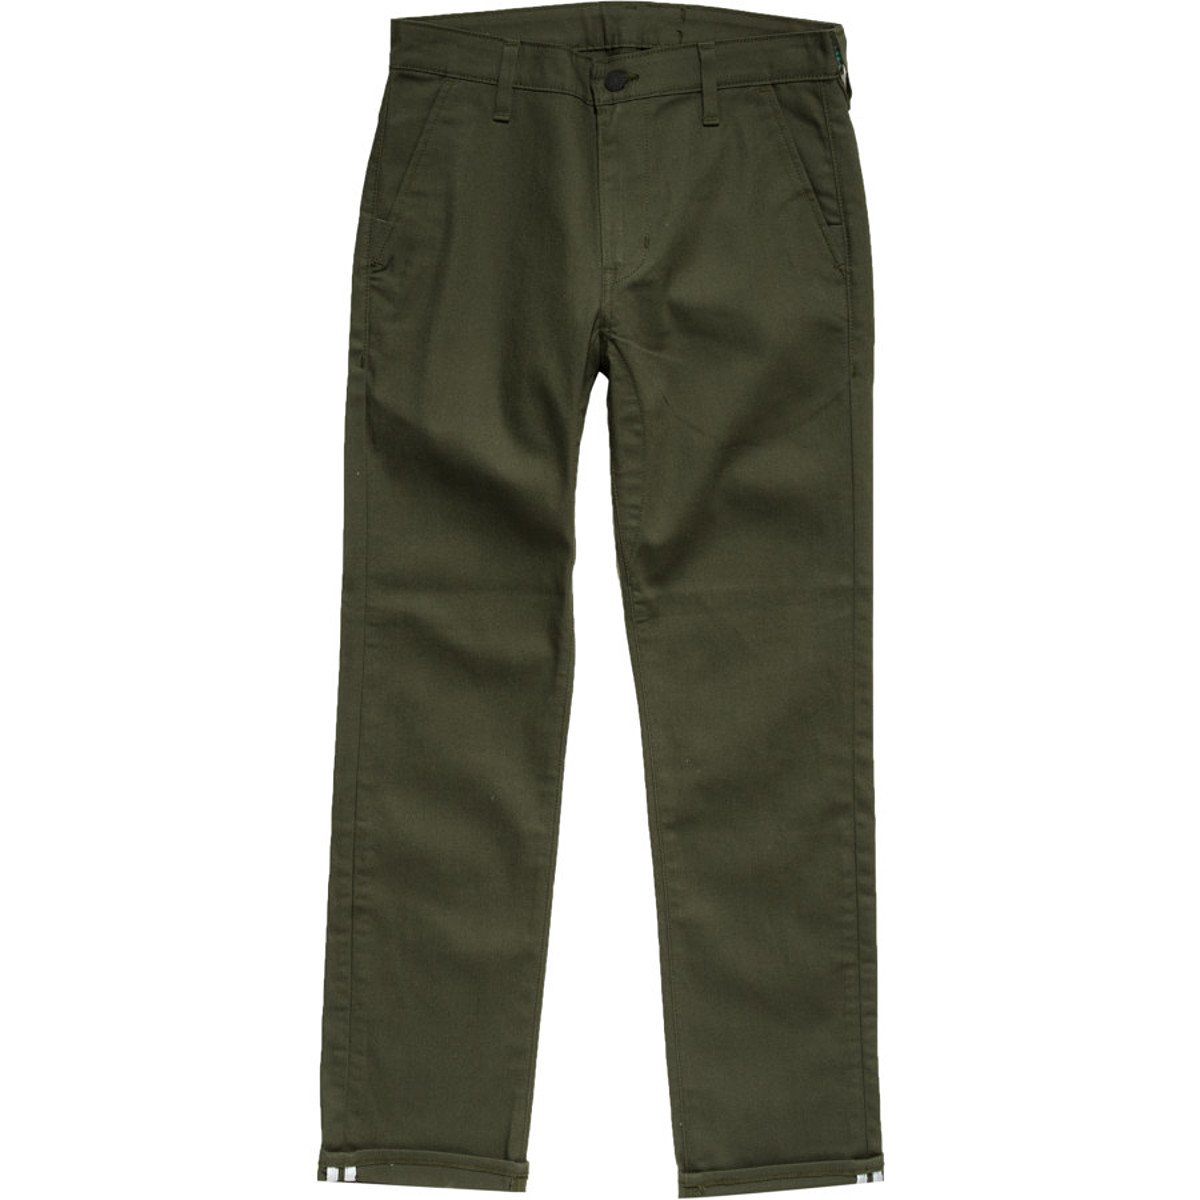 dbc81f89d43 Levi's Commuter 504 Pants - Men's Ivy Green, 29x32 - Men's at Amazon Men's  Clothing store: Cycling Compression Shorts